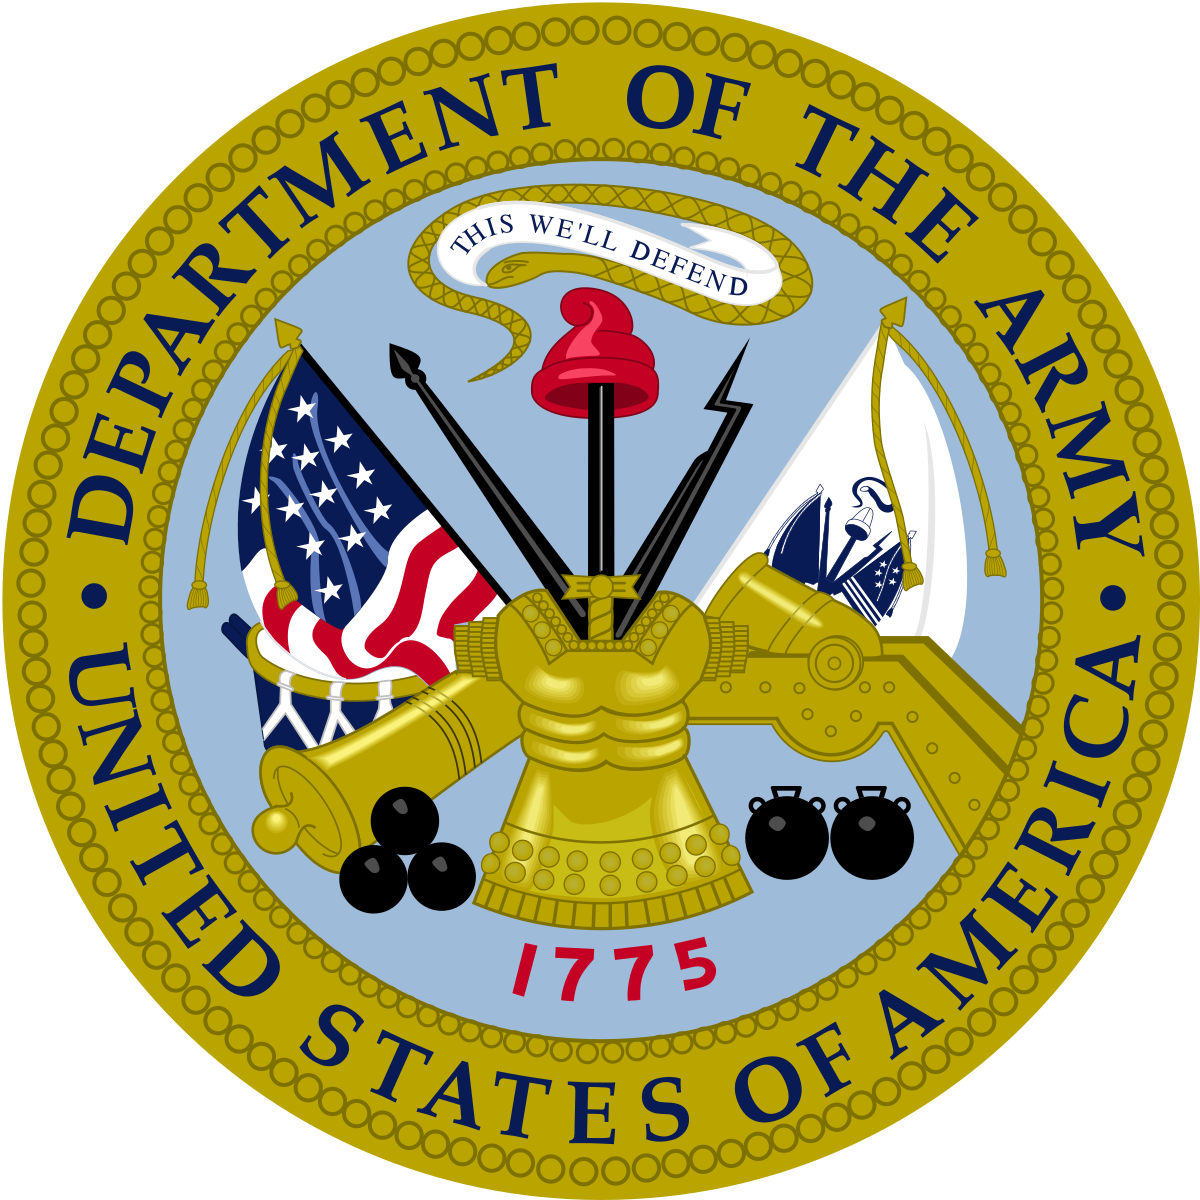 Clipart military demotion image royalty free library United States Secretary of the Army - Wikipedia image royalty free library